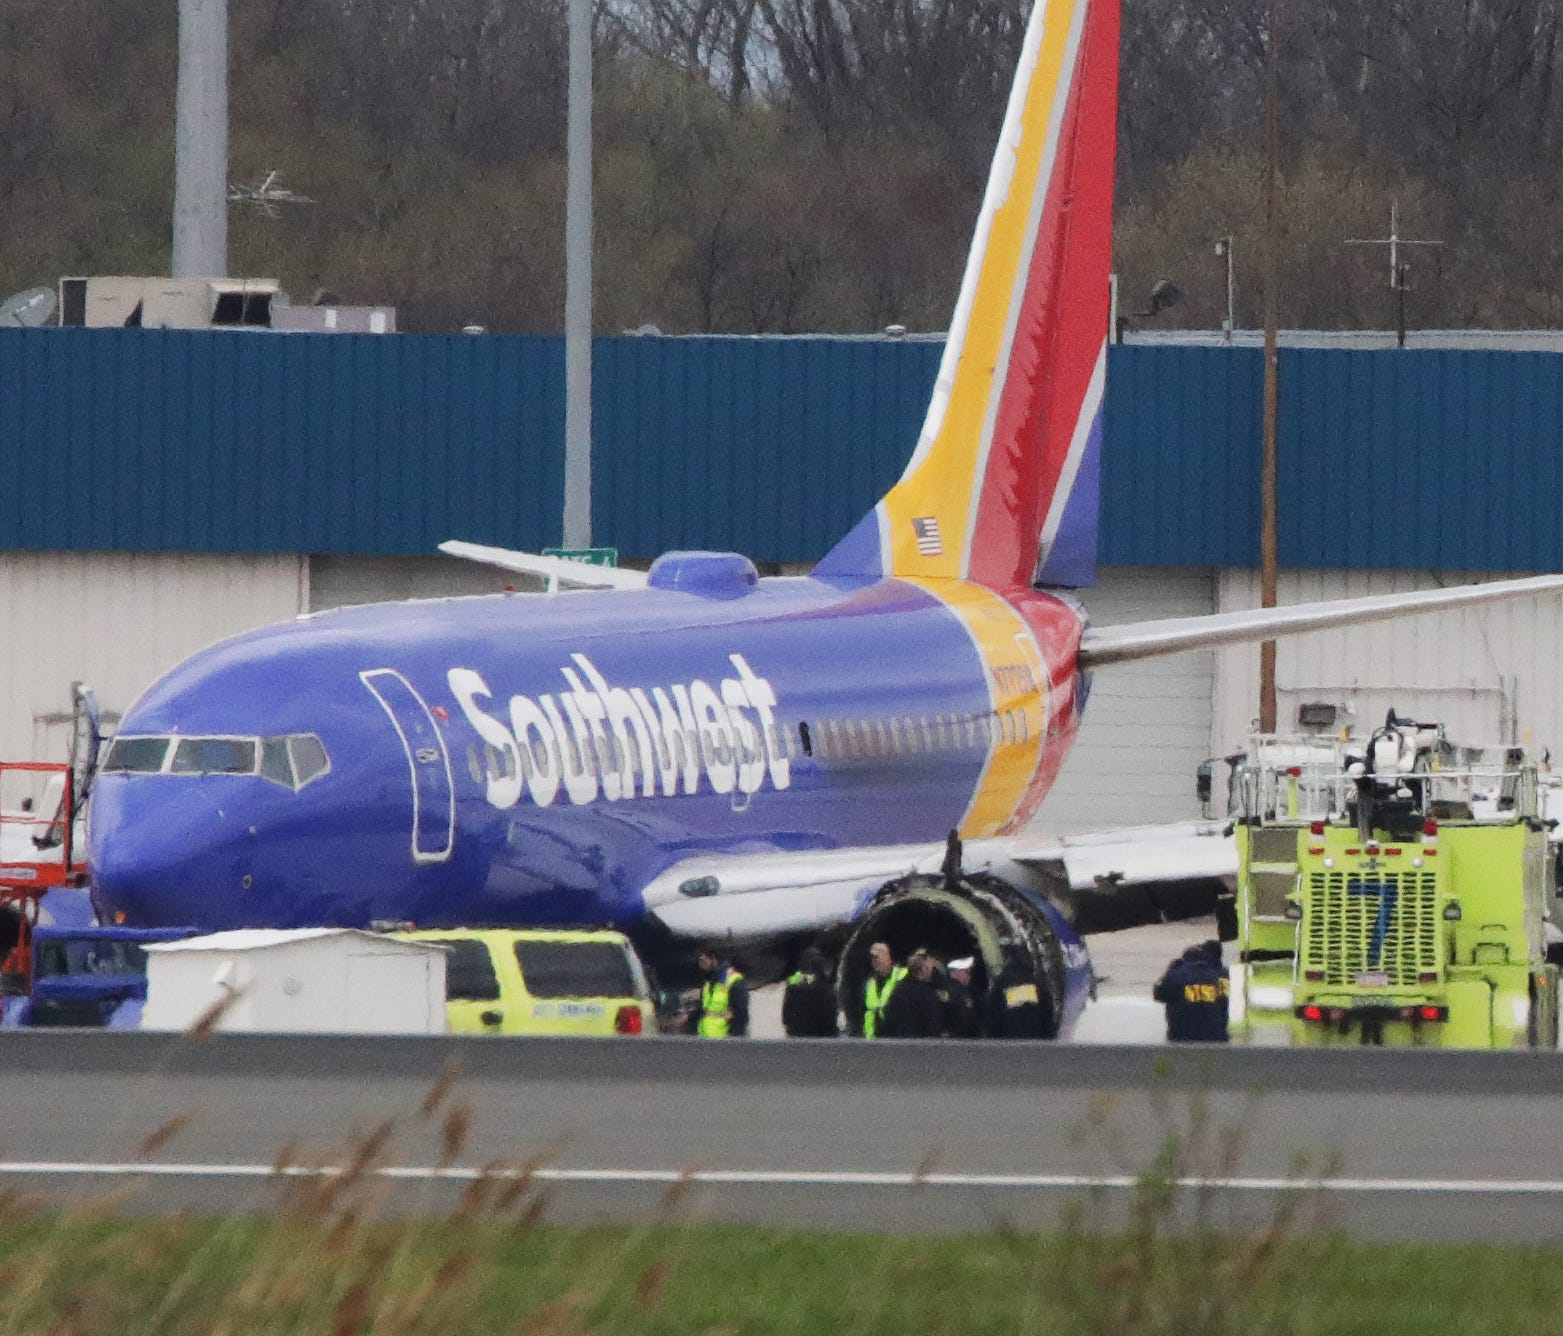 Southwest Airlines Flight 1380 sits on the runway at Philadelphia International Airport after it was forced to land with an engine failure,  April 17, 2018.